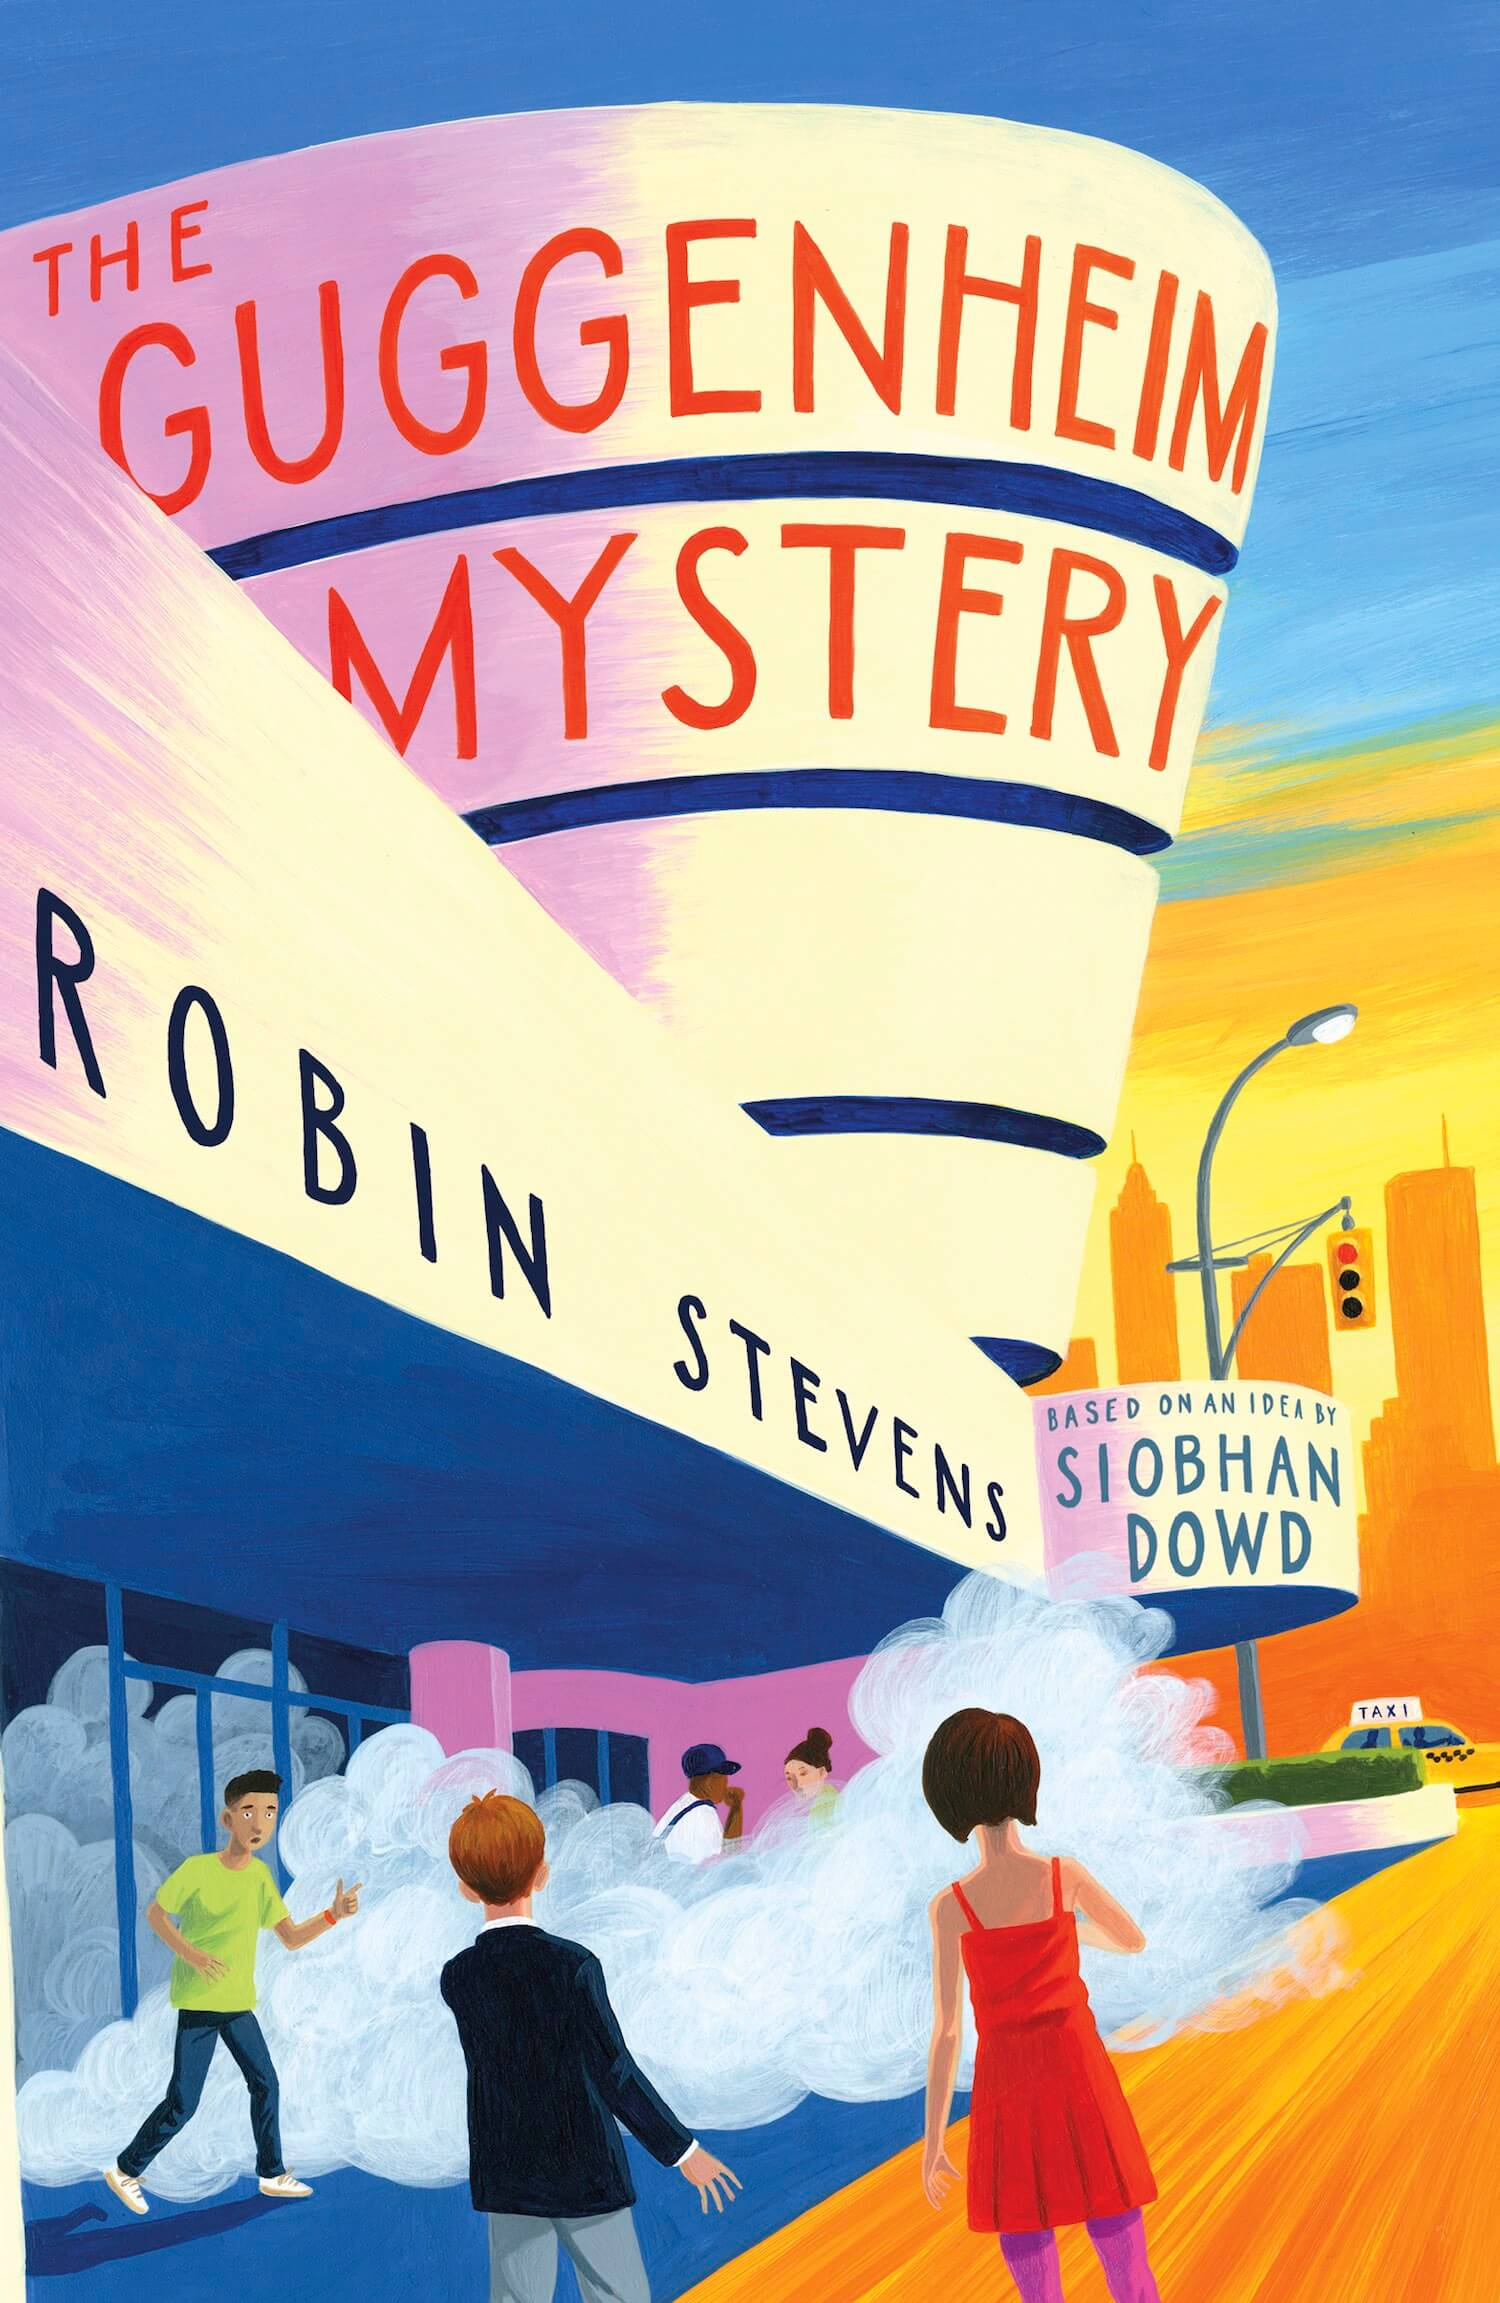 est living gift guide The Guggenheim Mystery FRONT